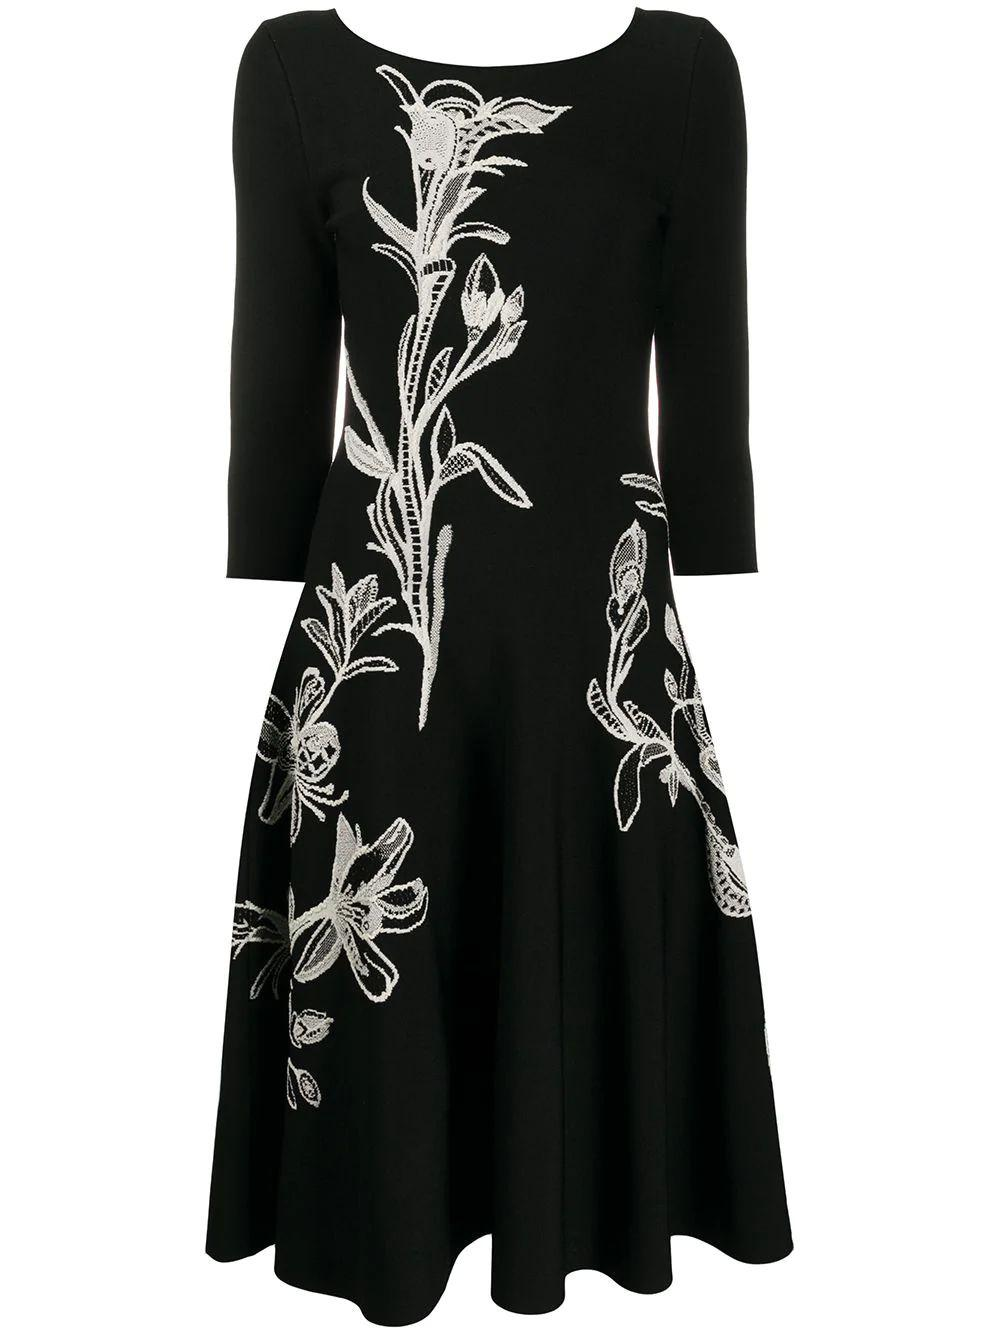 Long Sleeve Embroidered Knit Dress Item # 622747Q1AOS